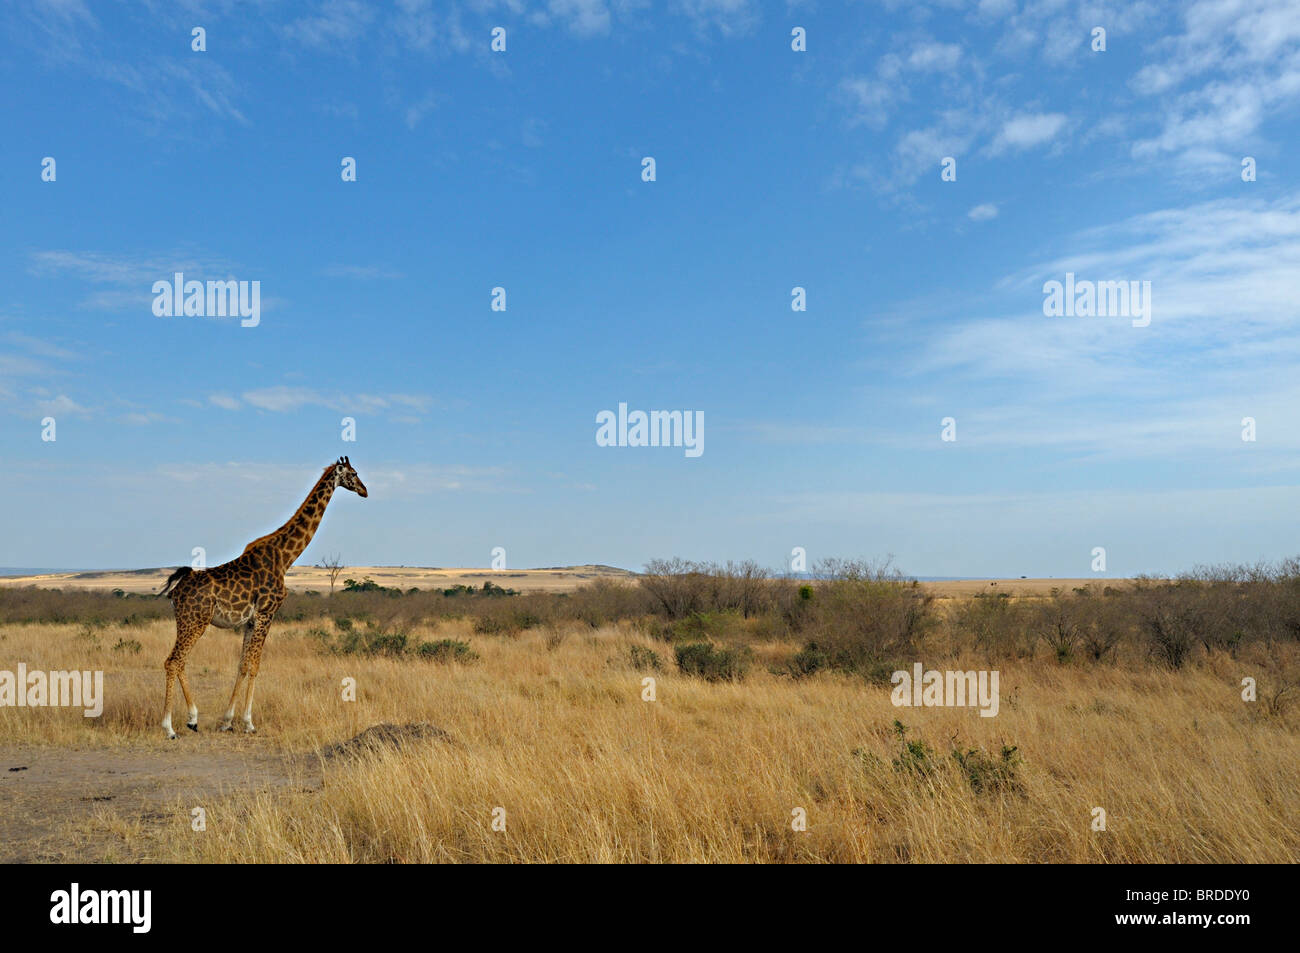 Masai giraffe in its habitat in Masai Mara, Kenya, Africa - Stock Image